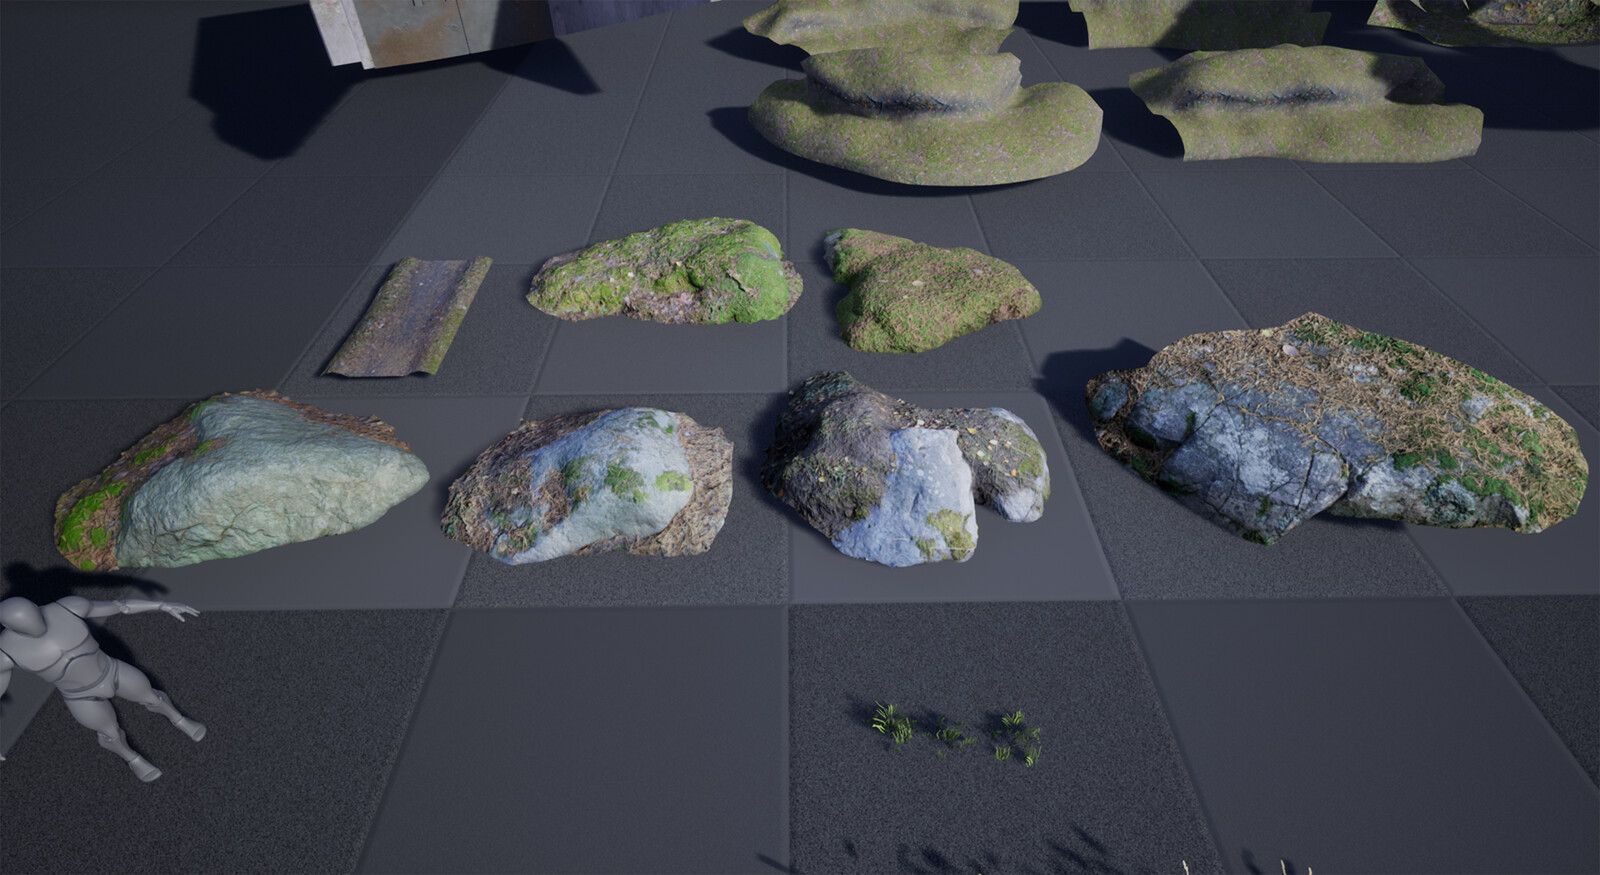 Photoscanned rocks, moss and path. These where used to detail the overall low resolution landscape.